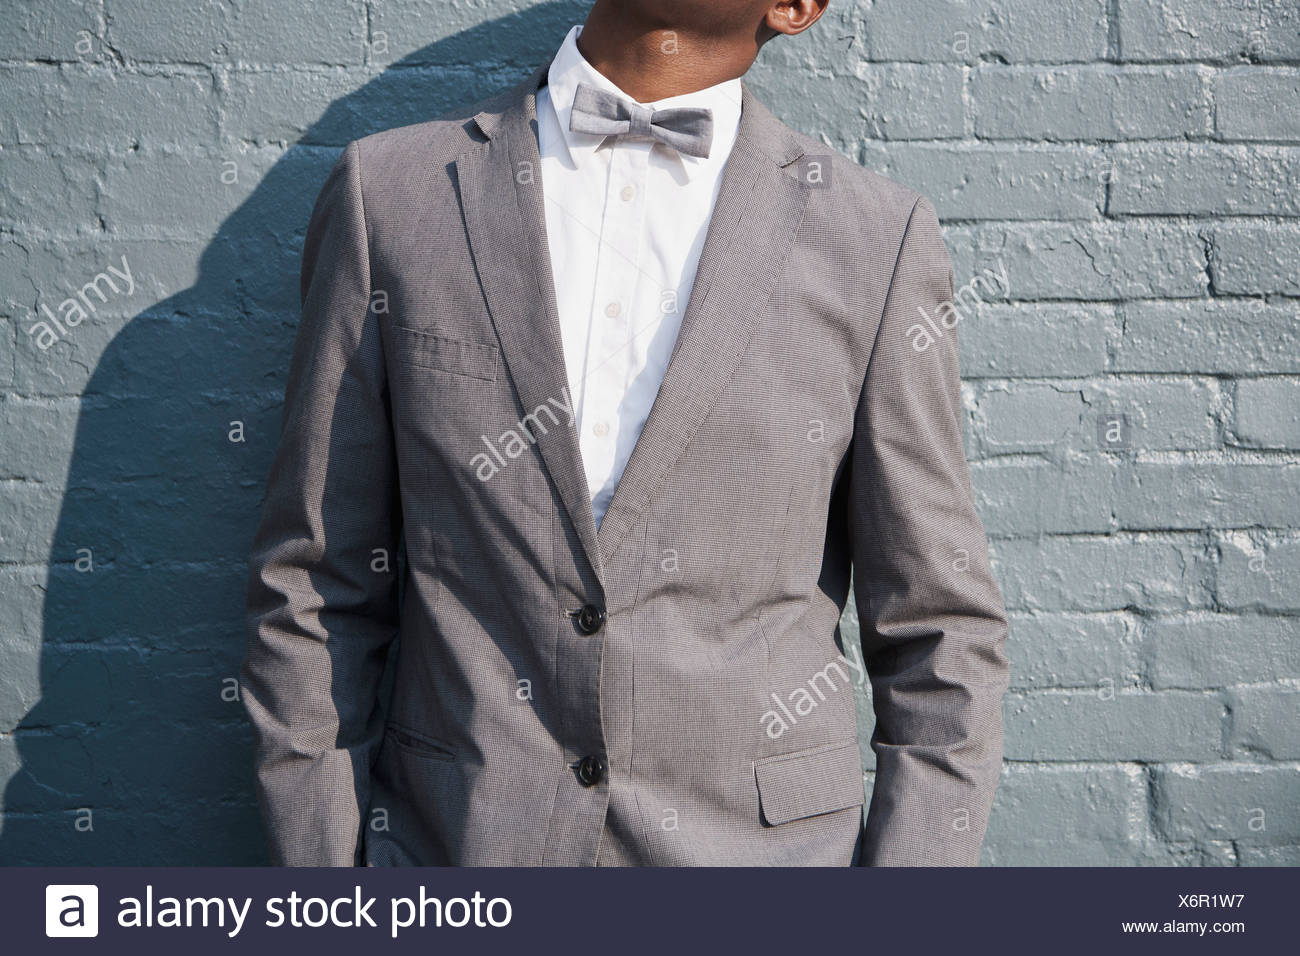 A man wearing a bow tie and suit, midsection - Stock Image